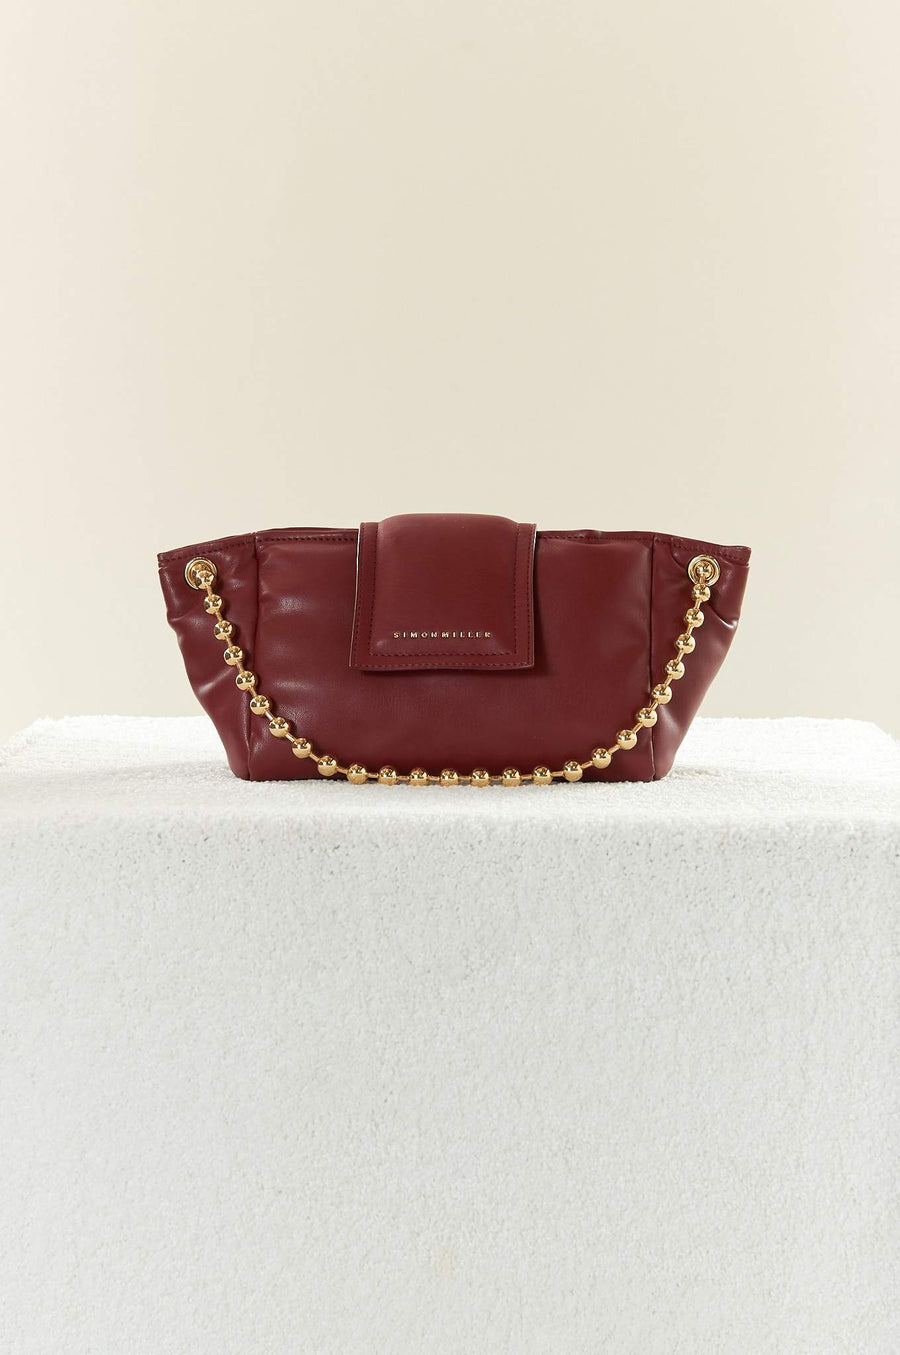 VEGAN LEATHER Dumpling Bag in Burgundy